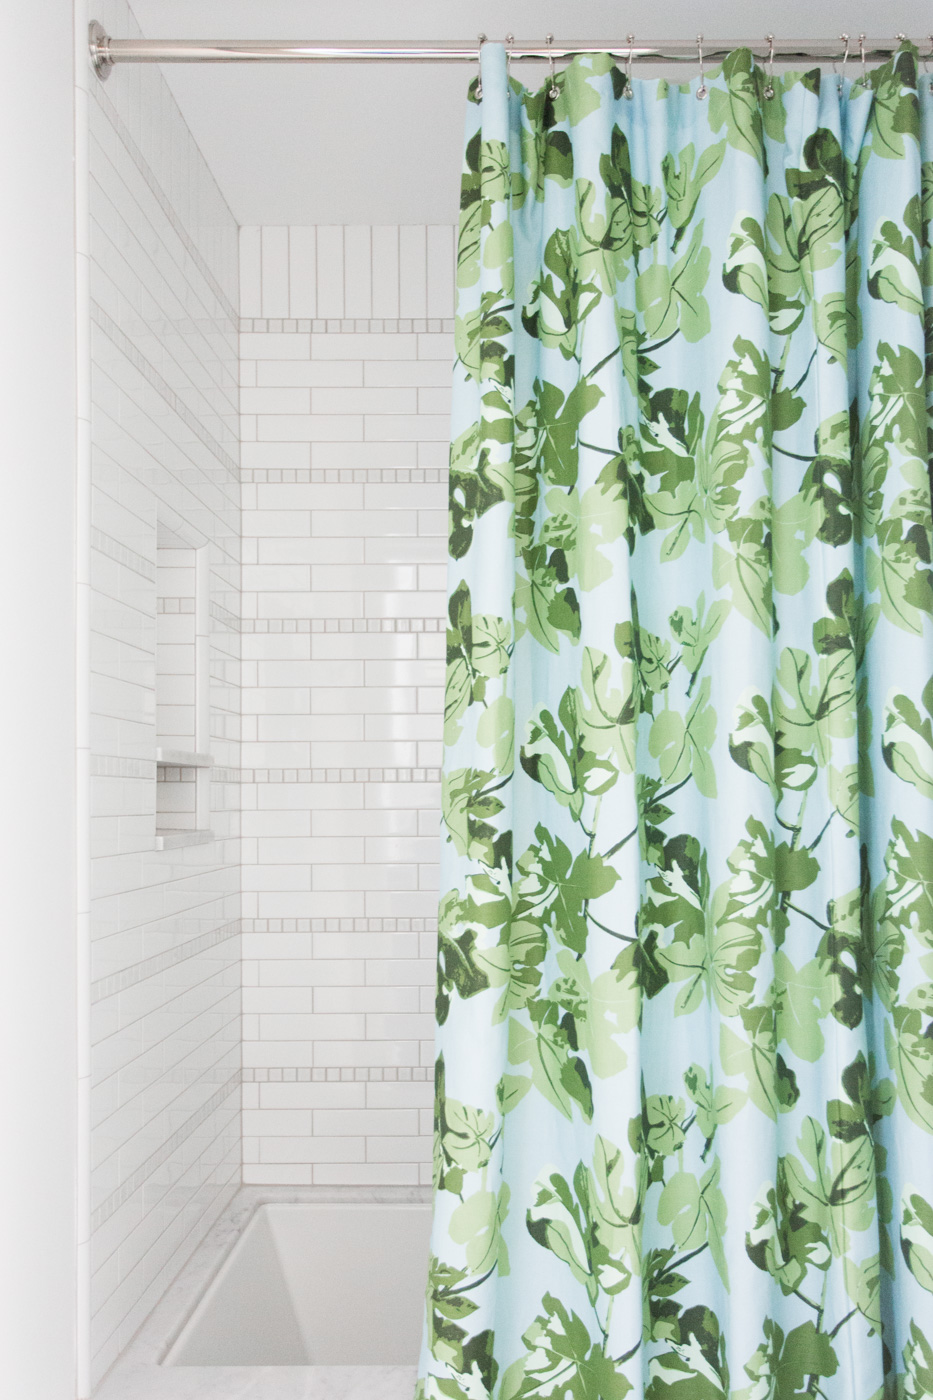 Green and blue shower curtain in bathroom